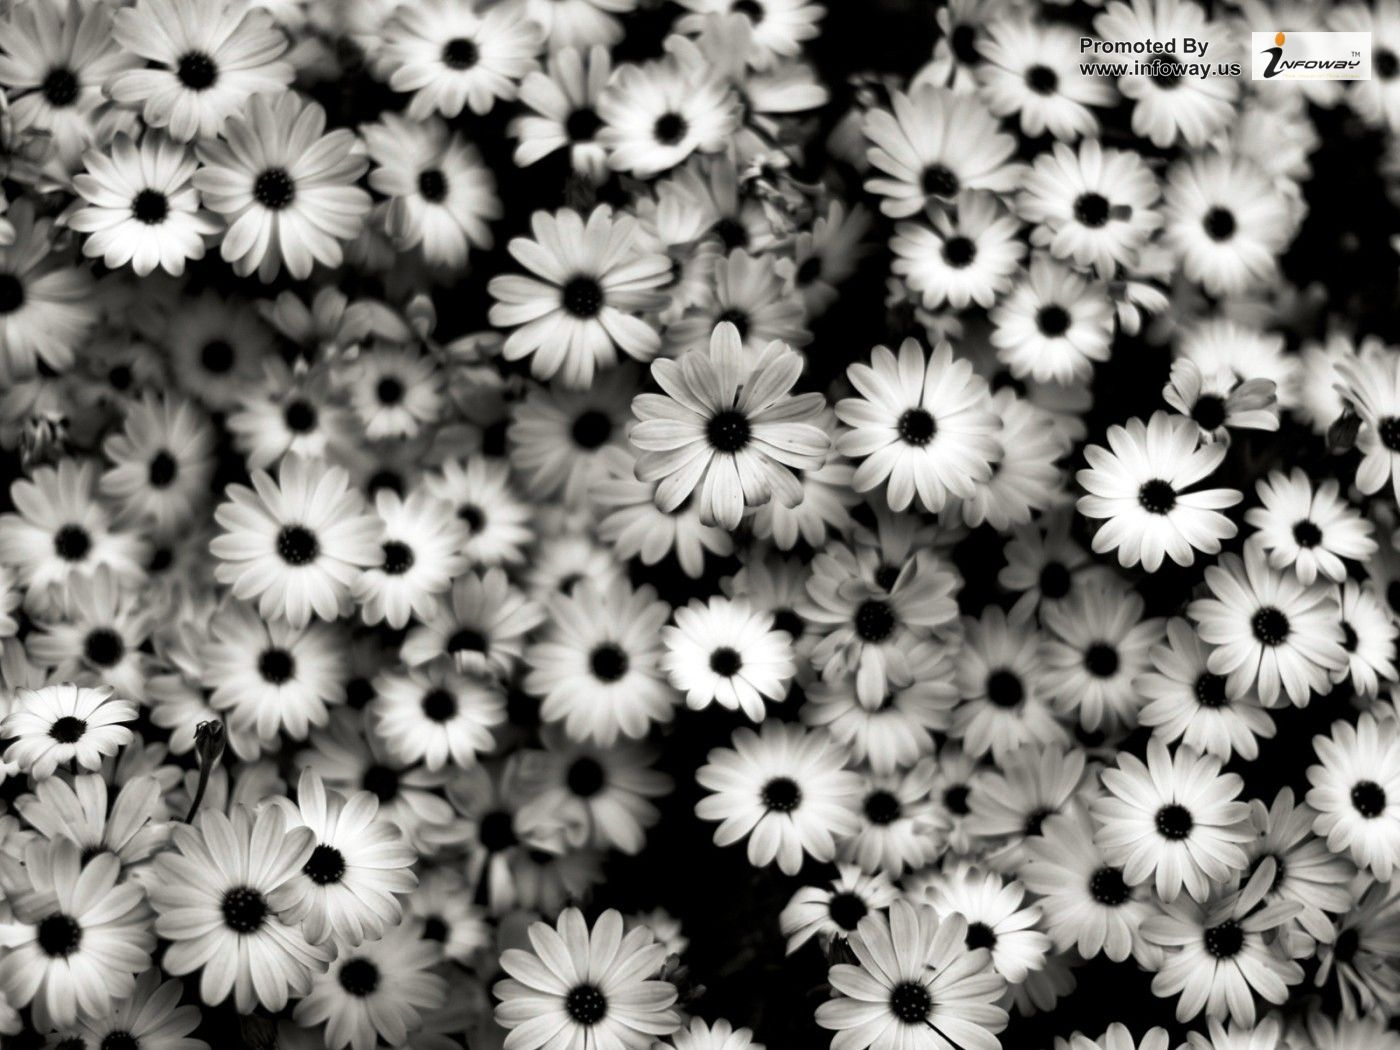 Bwfw50 Black White Floral Wallpaper Today 2020 10 08 Download Here